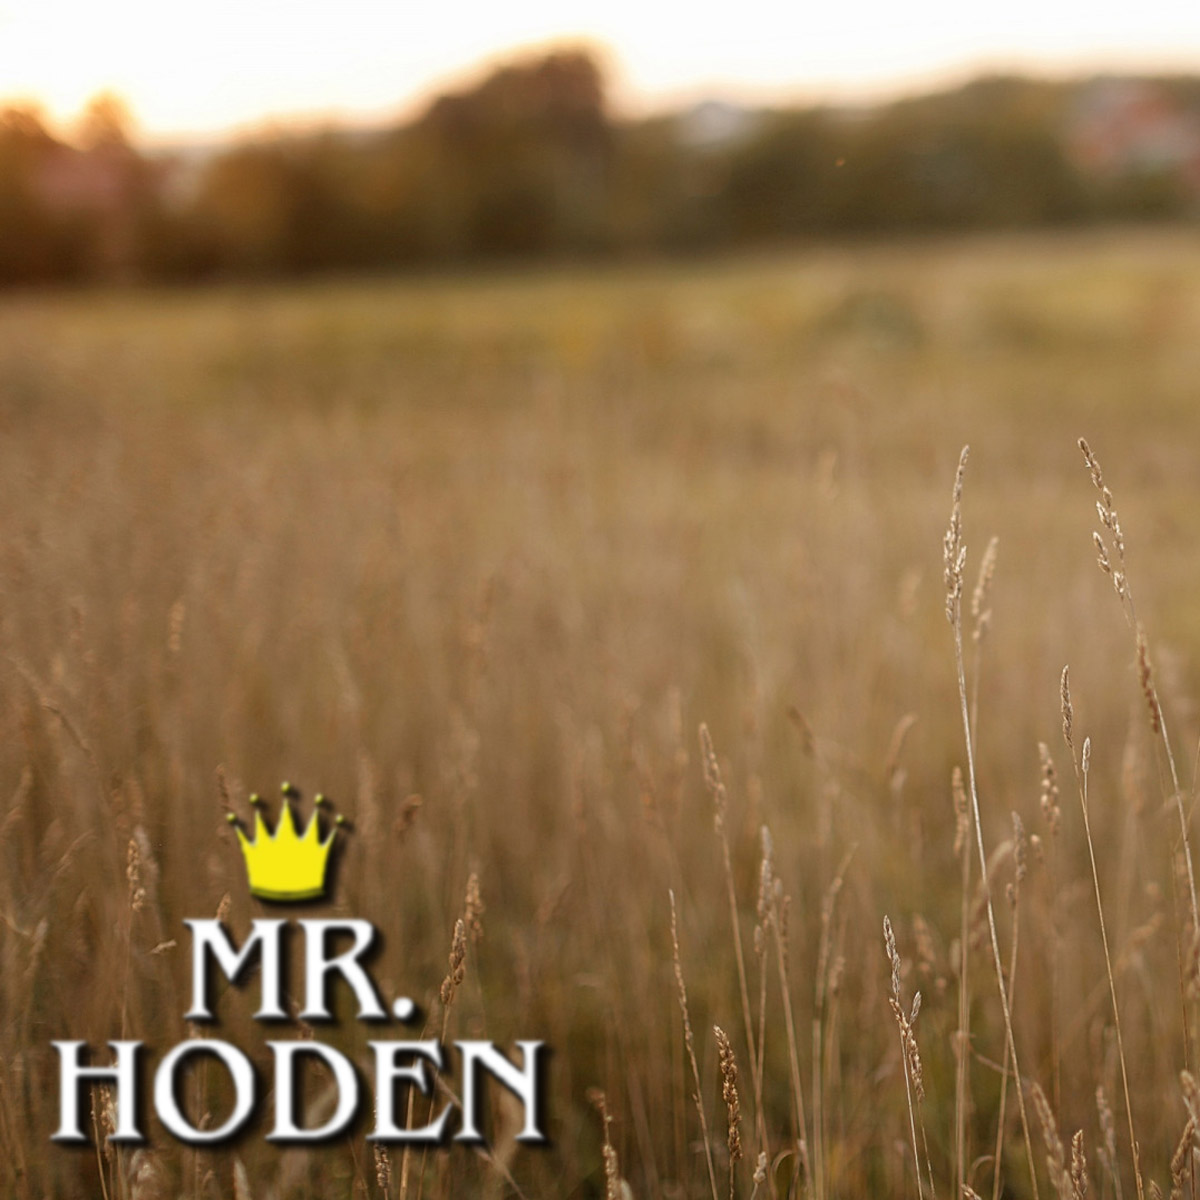 Upcoming: Mr. Hoden - Slow Freestyle Beat 2021 [FREE BEAT]